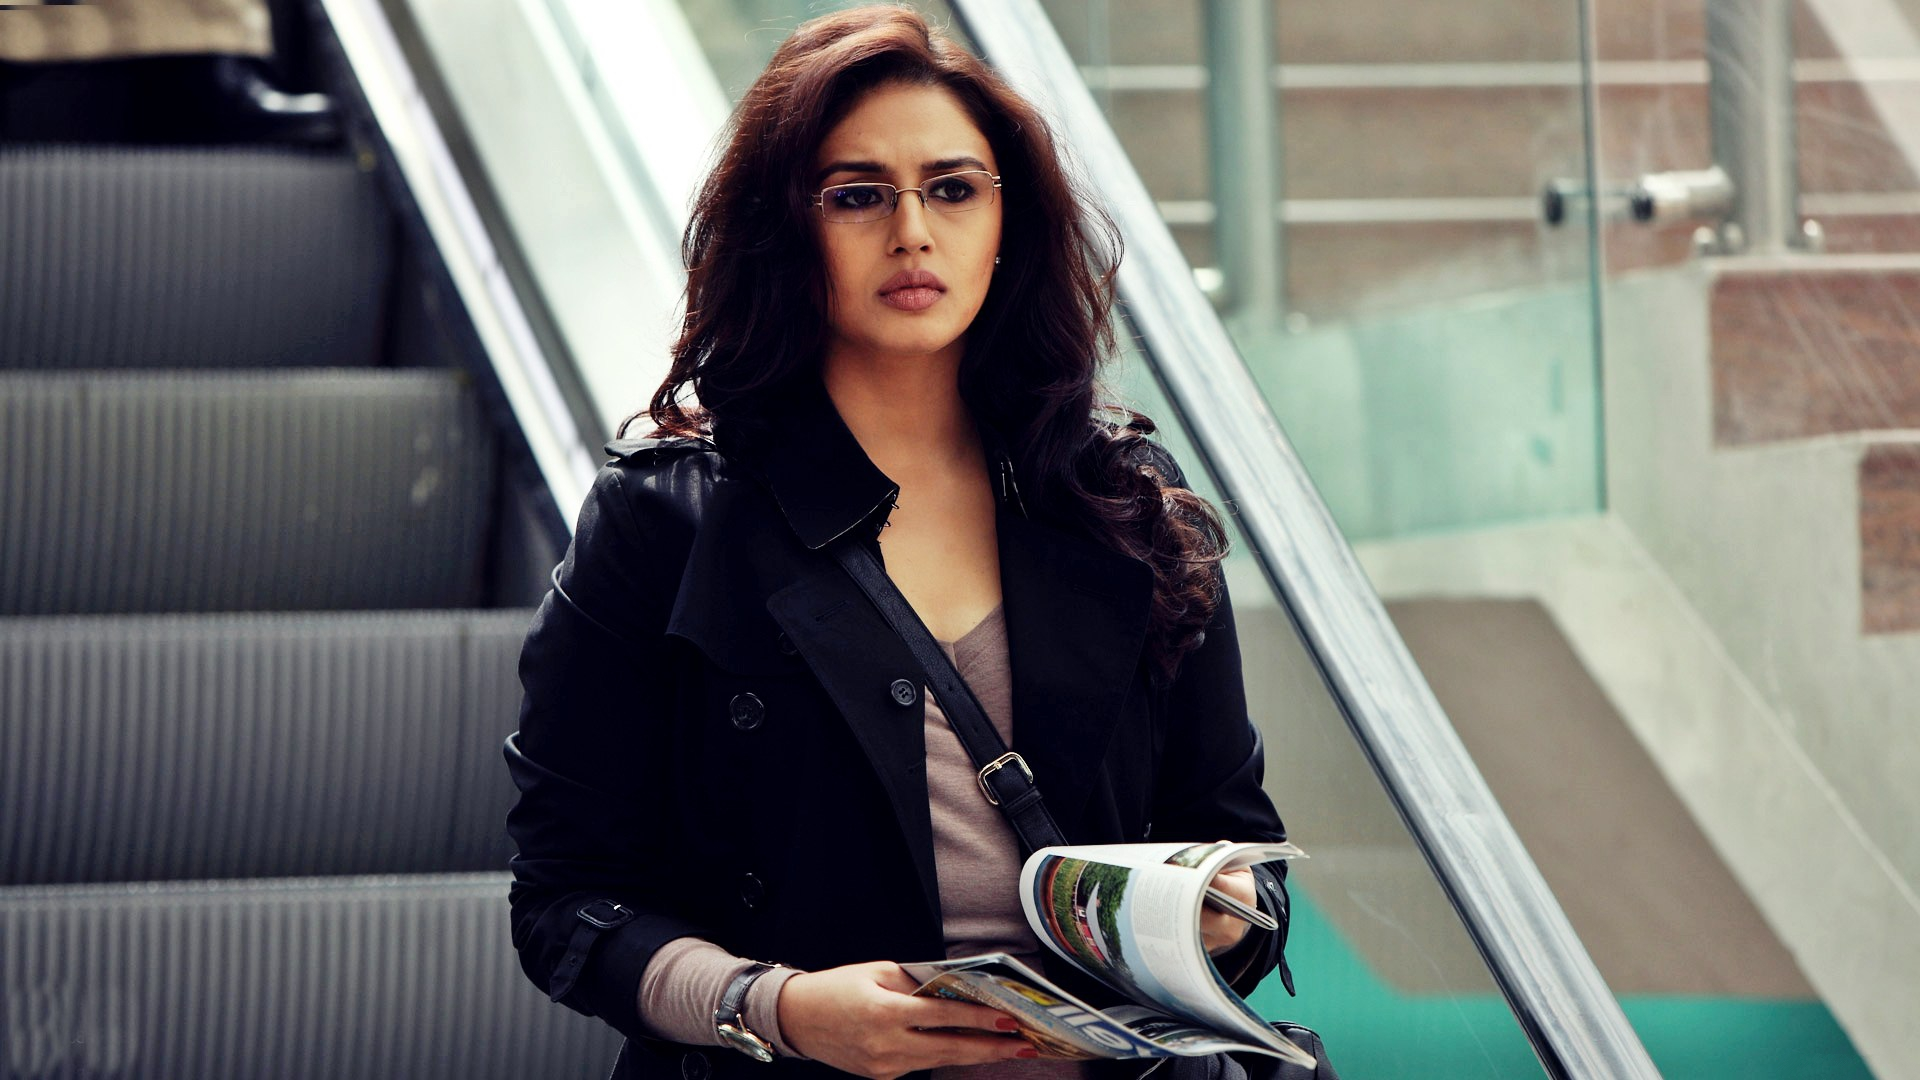 huma qureshi hd wallpaper background